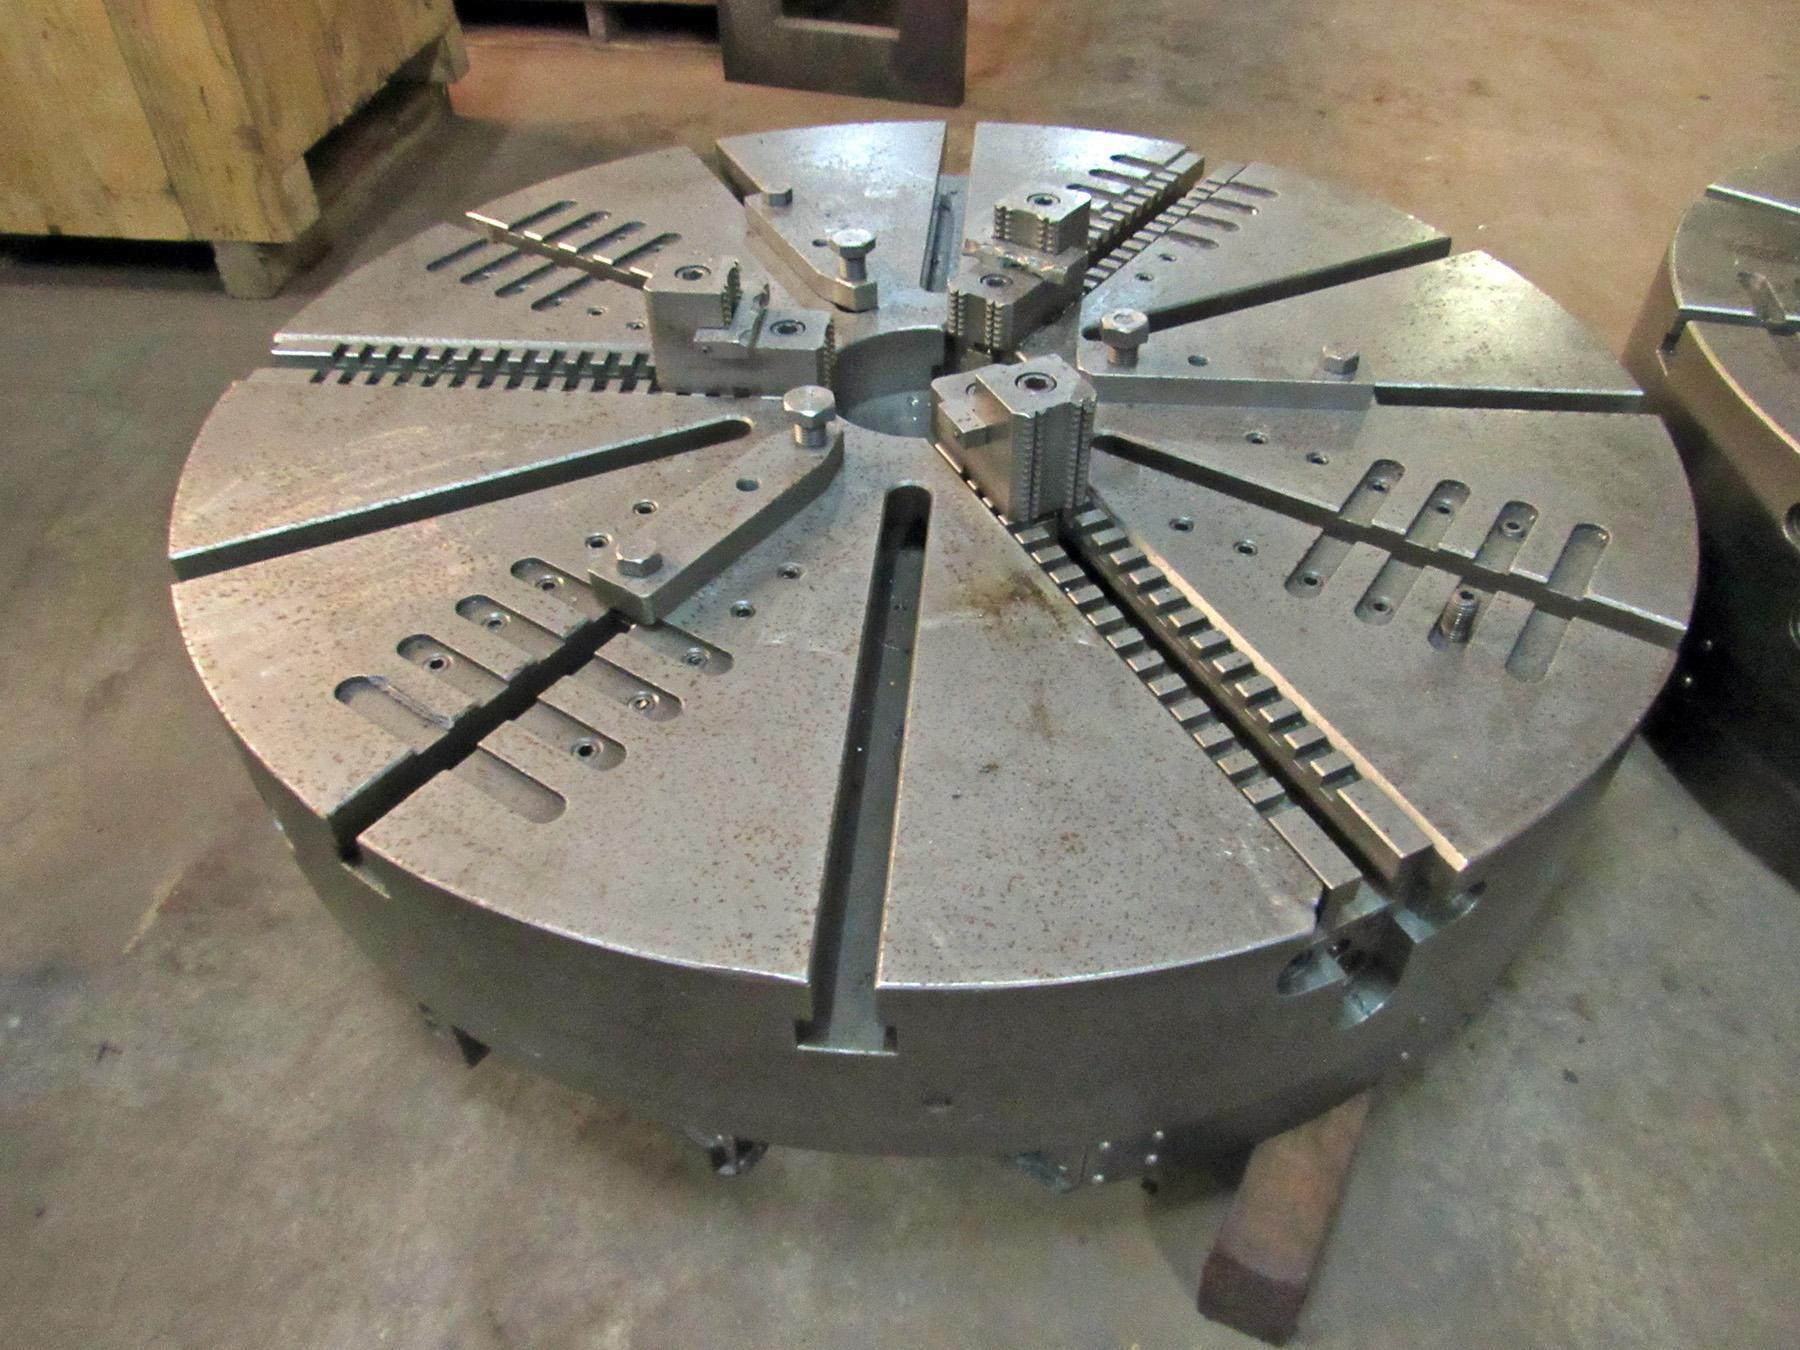 "USED, 48"" 3-JAW CHUCK FROM GIDDINGS & LEWIS VTC 48 CNC VERTICAL BORING MILL"